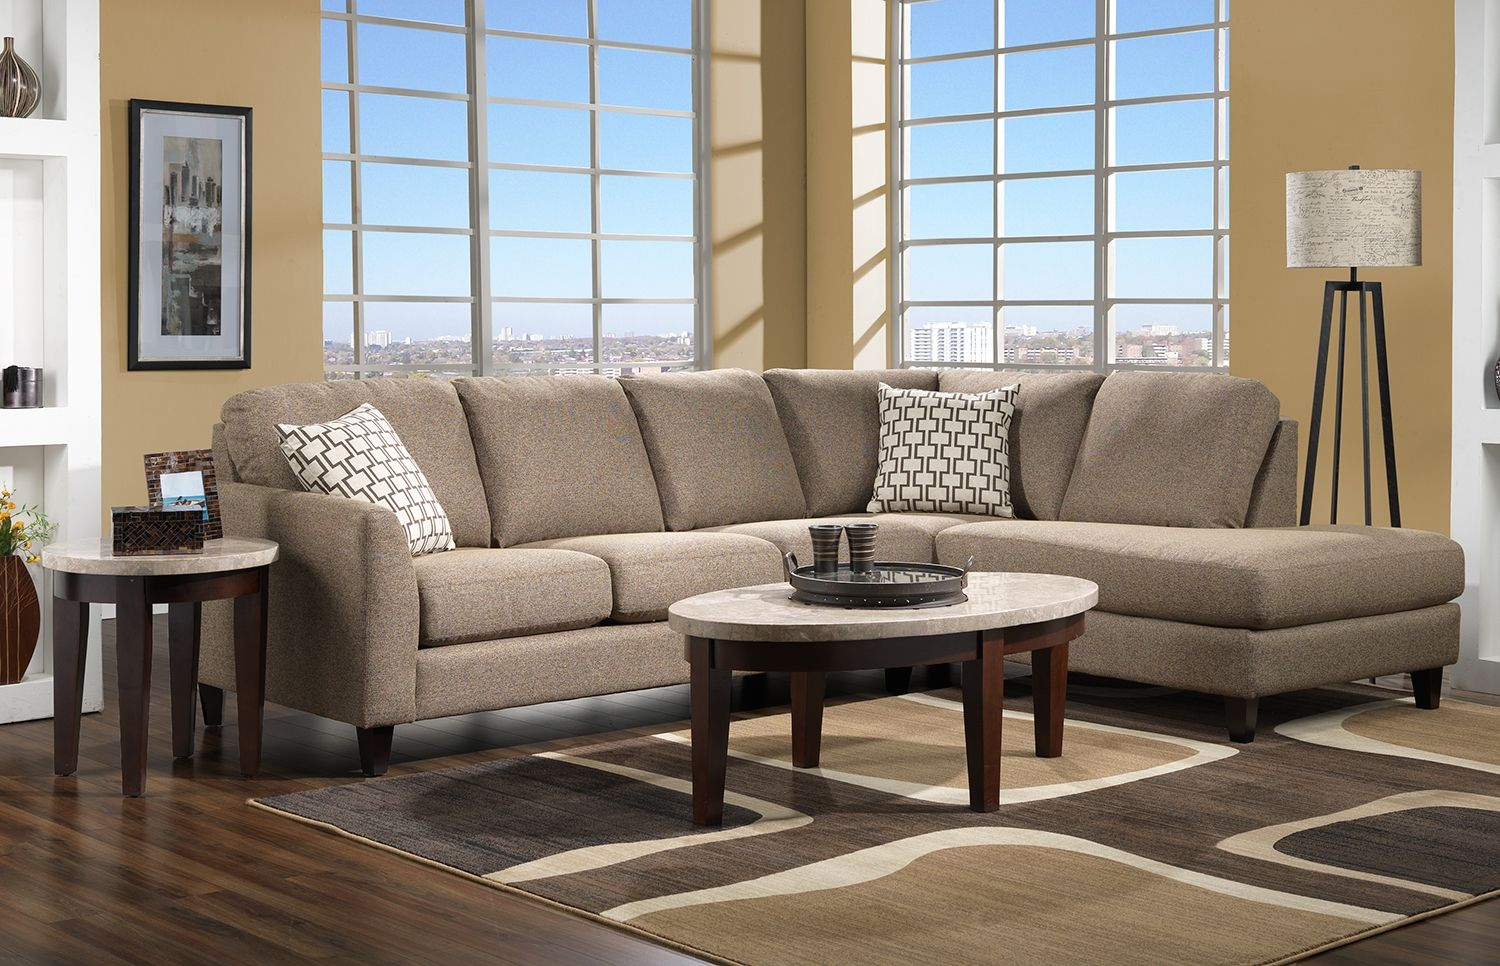 Living room furniture the ryder collection ryder 2 pc sectional